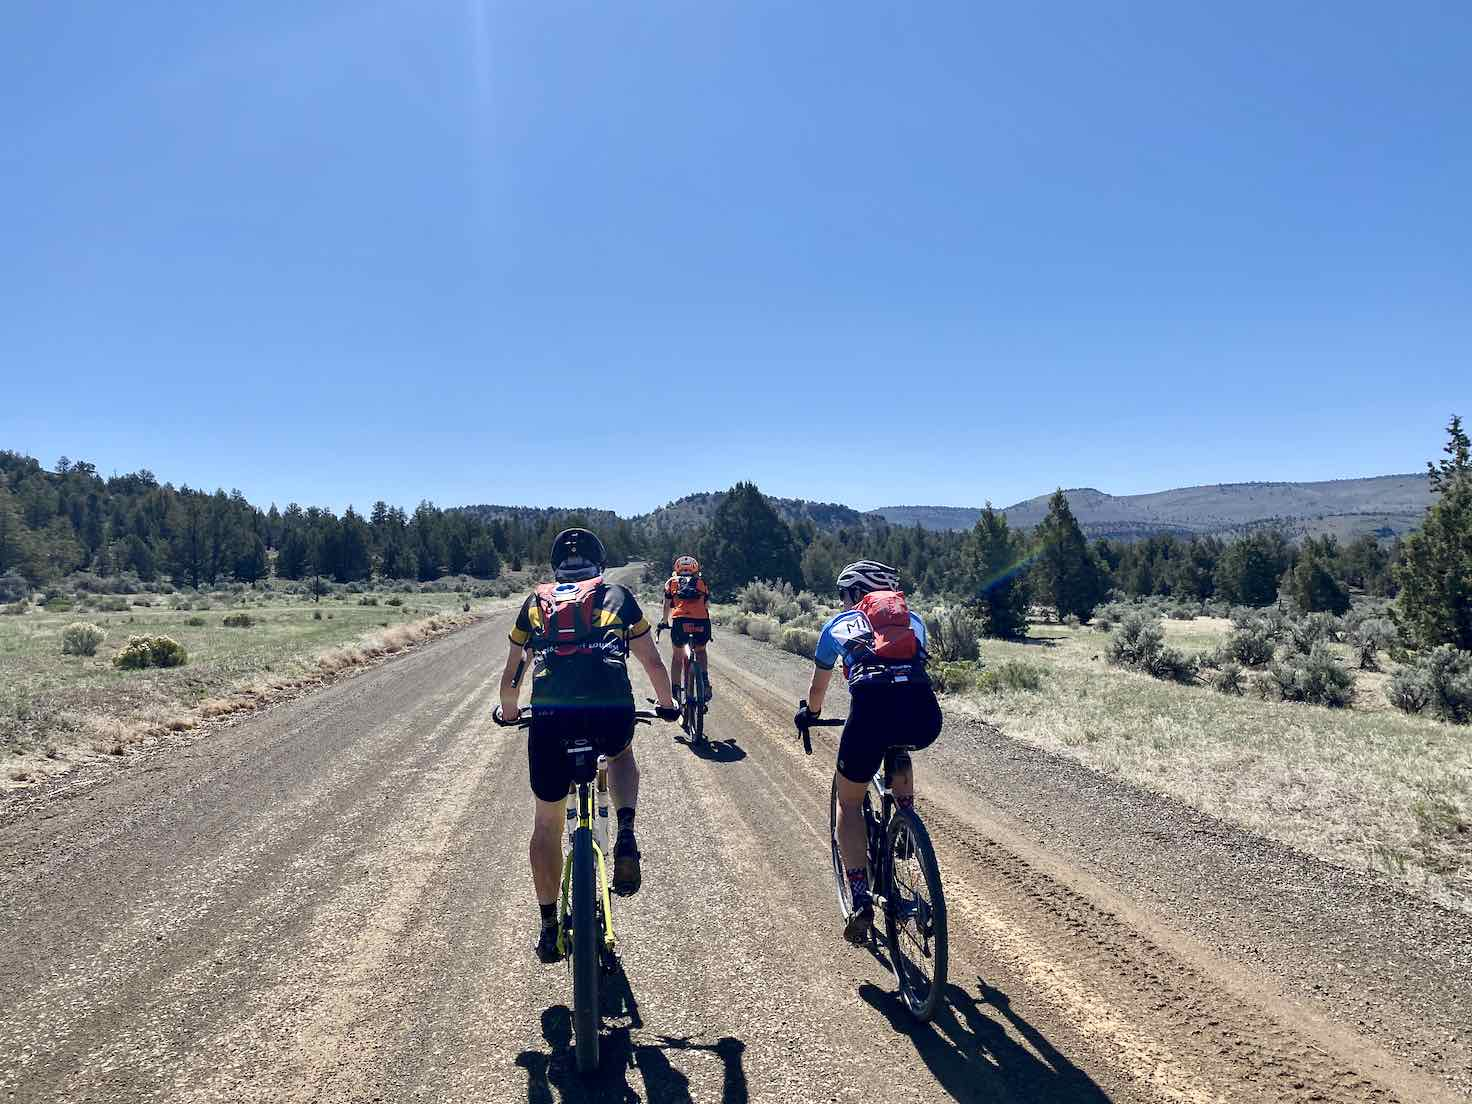 A group of cyclists riding Bear Creek road in Central Oregon.